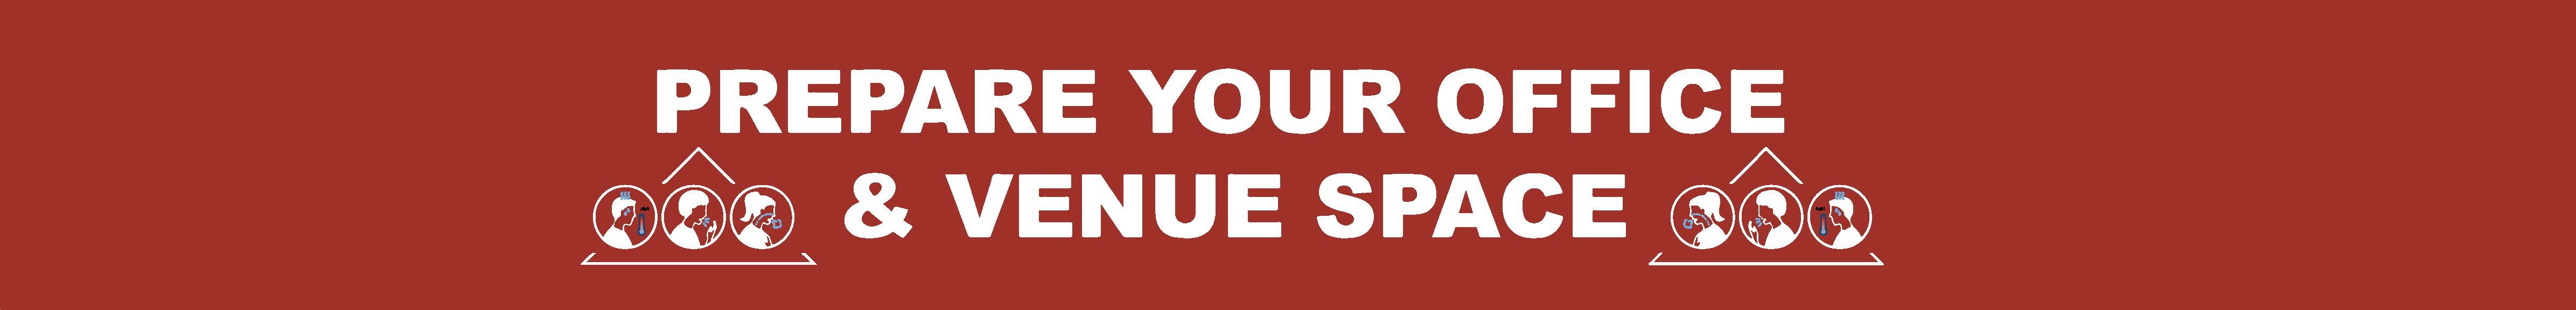 prepare your office and venue space banner